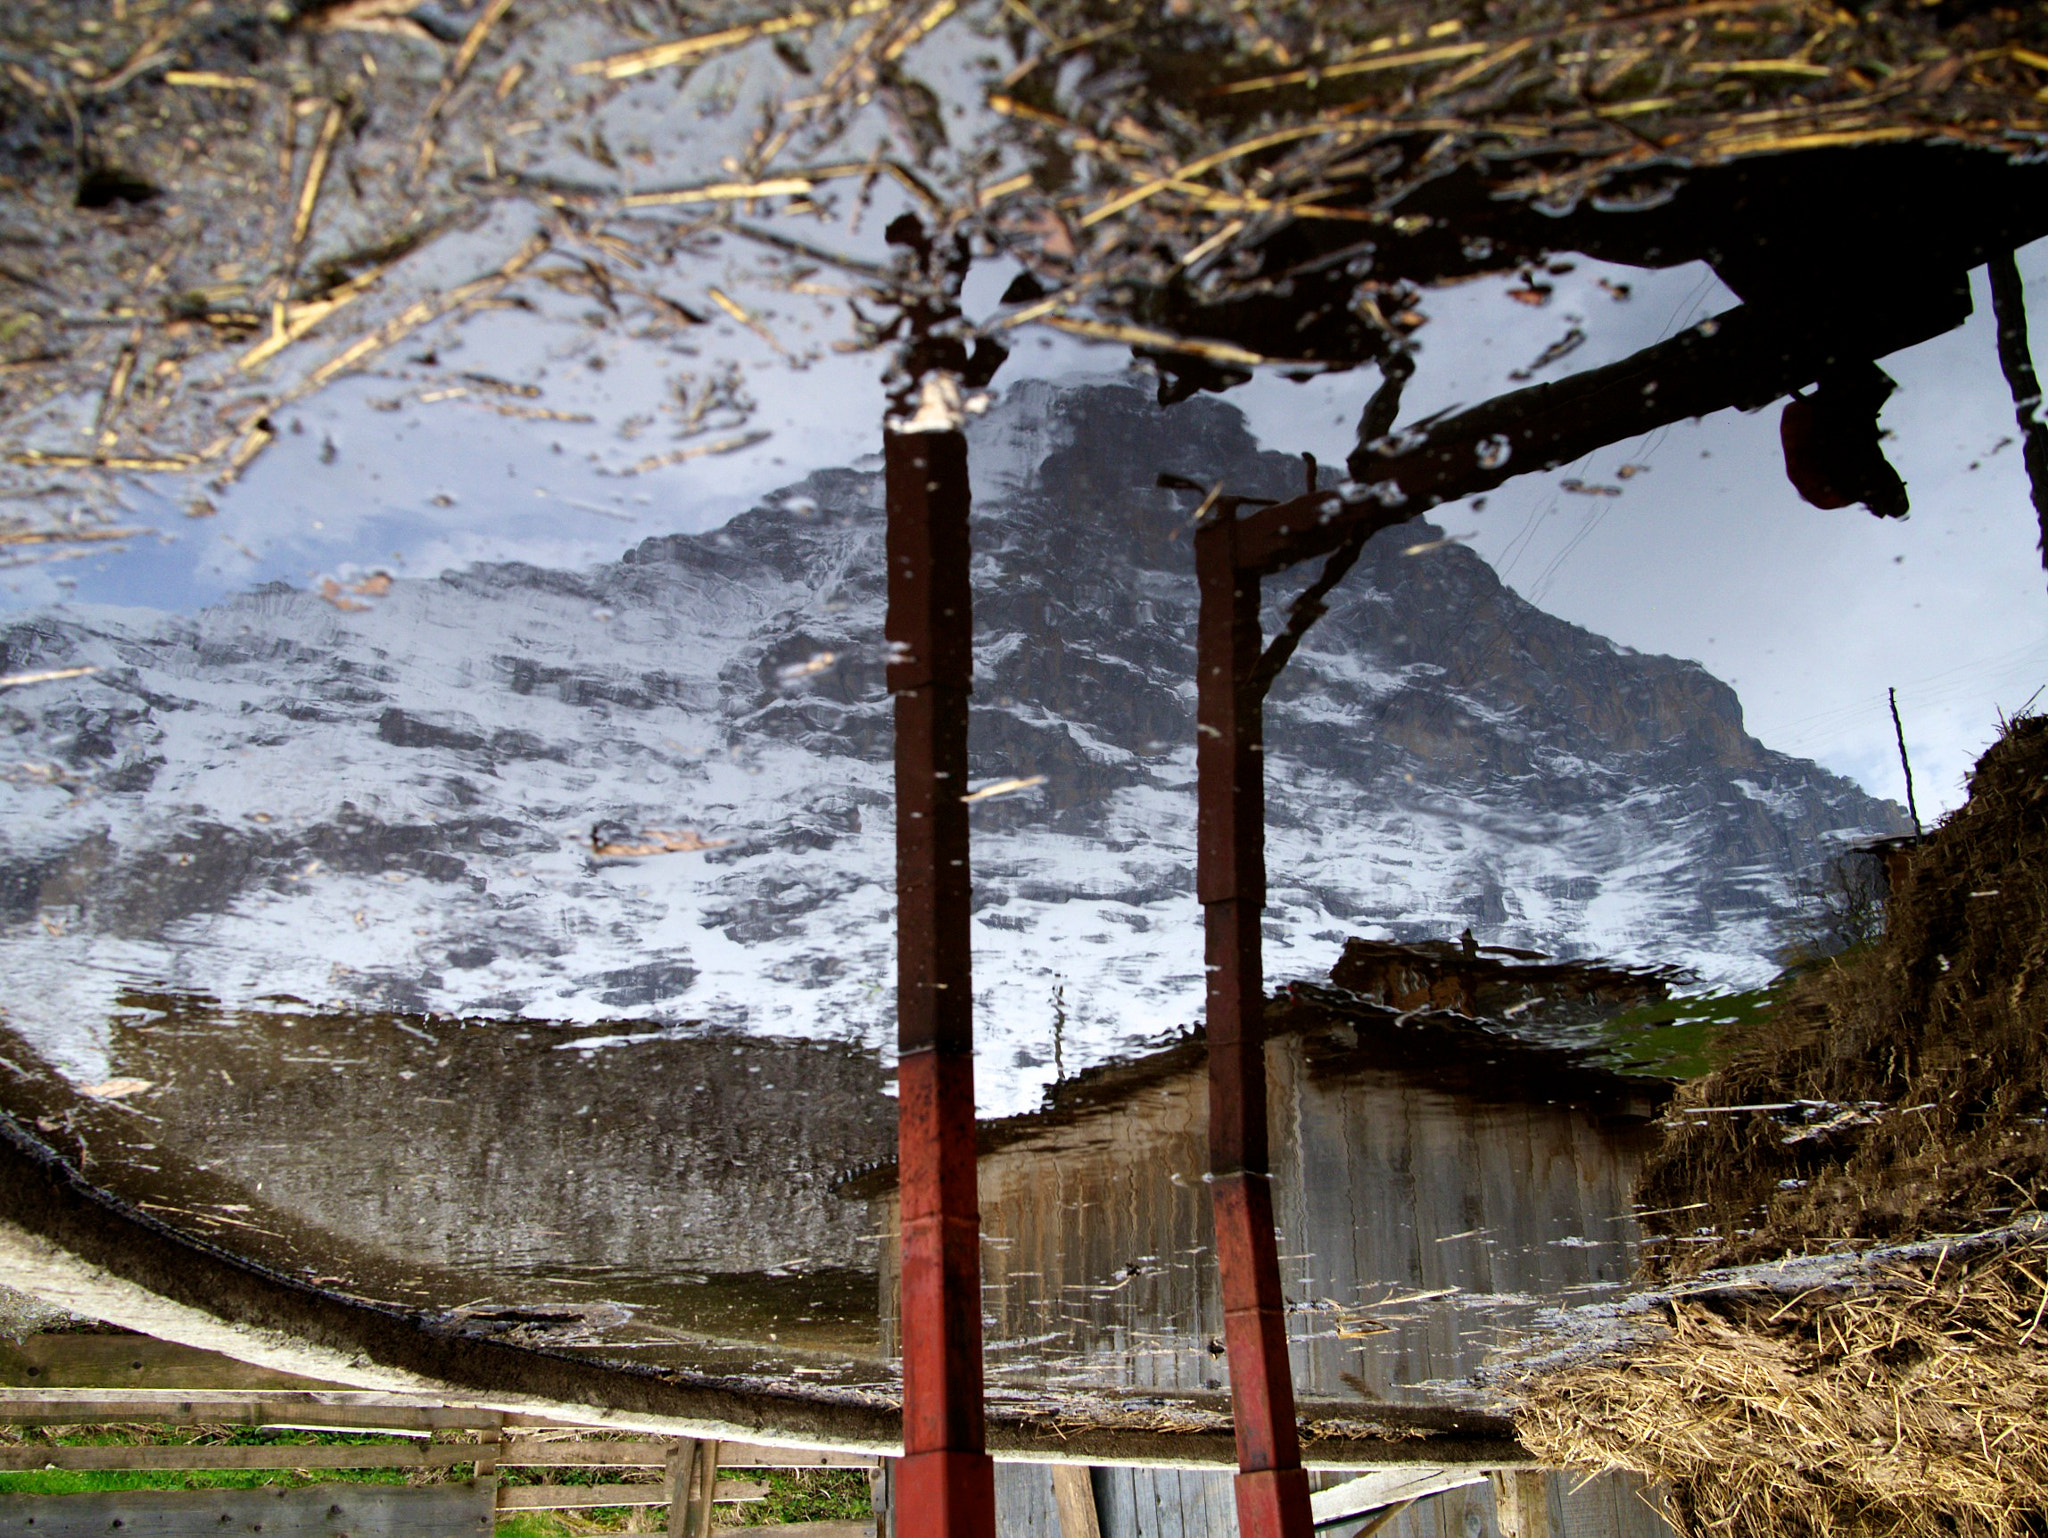 Photograph Eiger-reflection I by Martin B on 500px